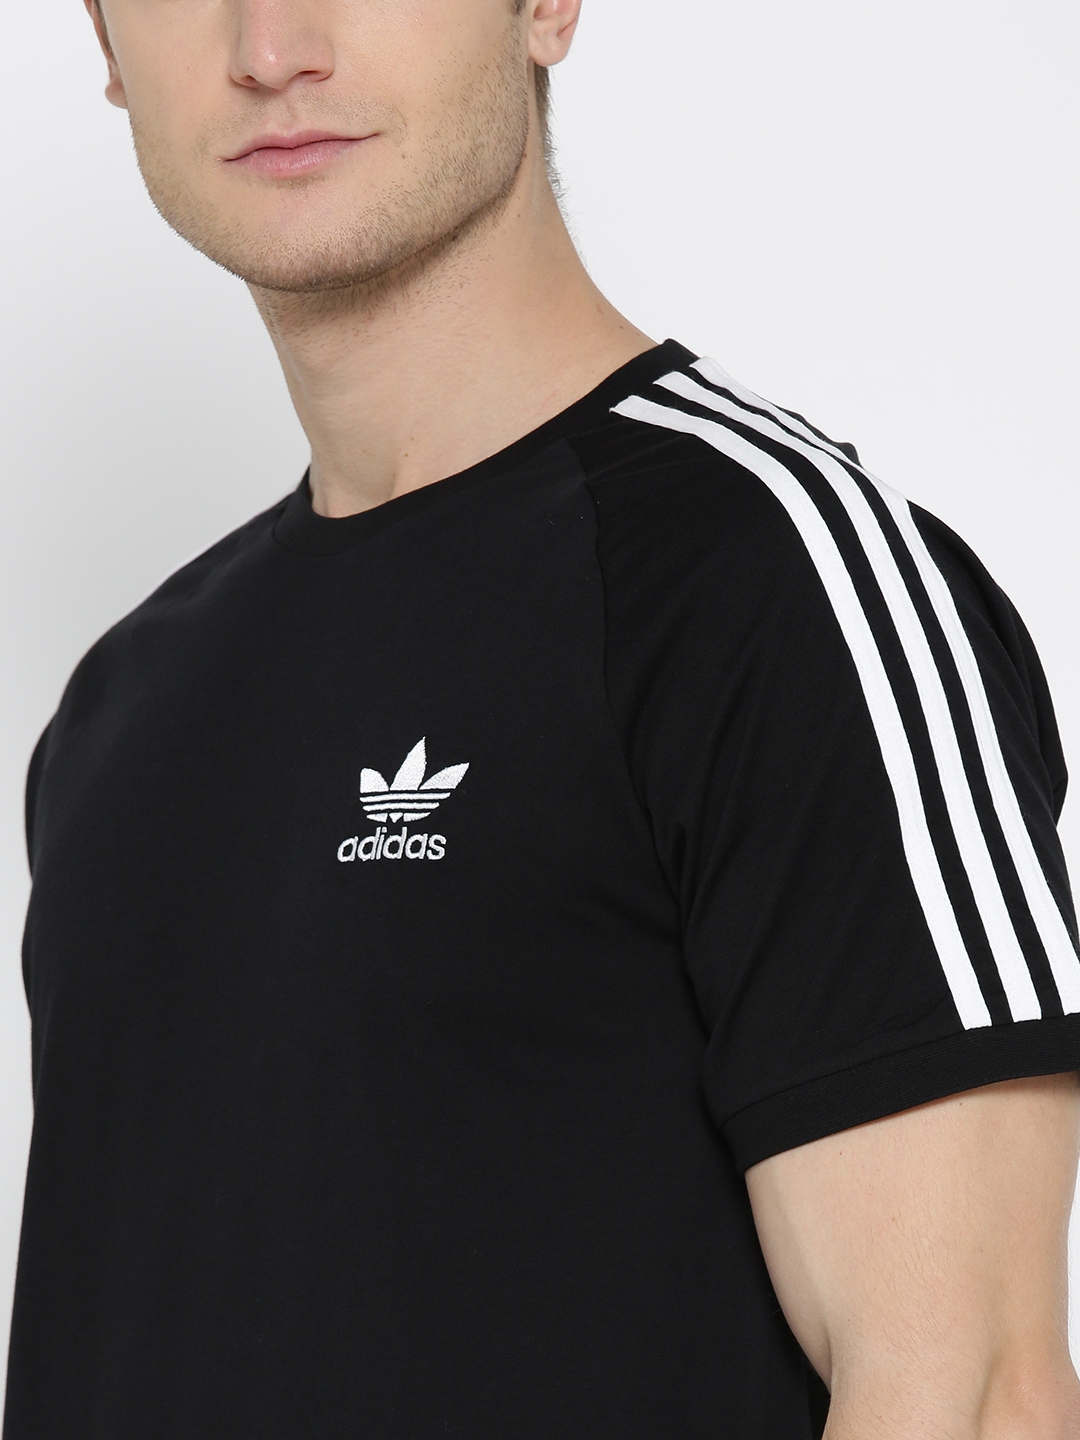 7aecf6ccf5bd Buy ADIDAS Originals Men Black 3 Stripes Solid Round Neck T Shirt ...